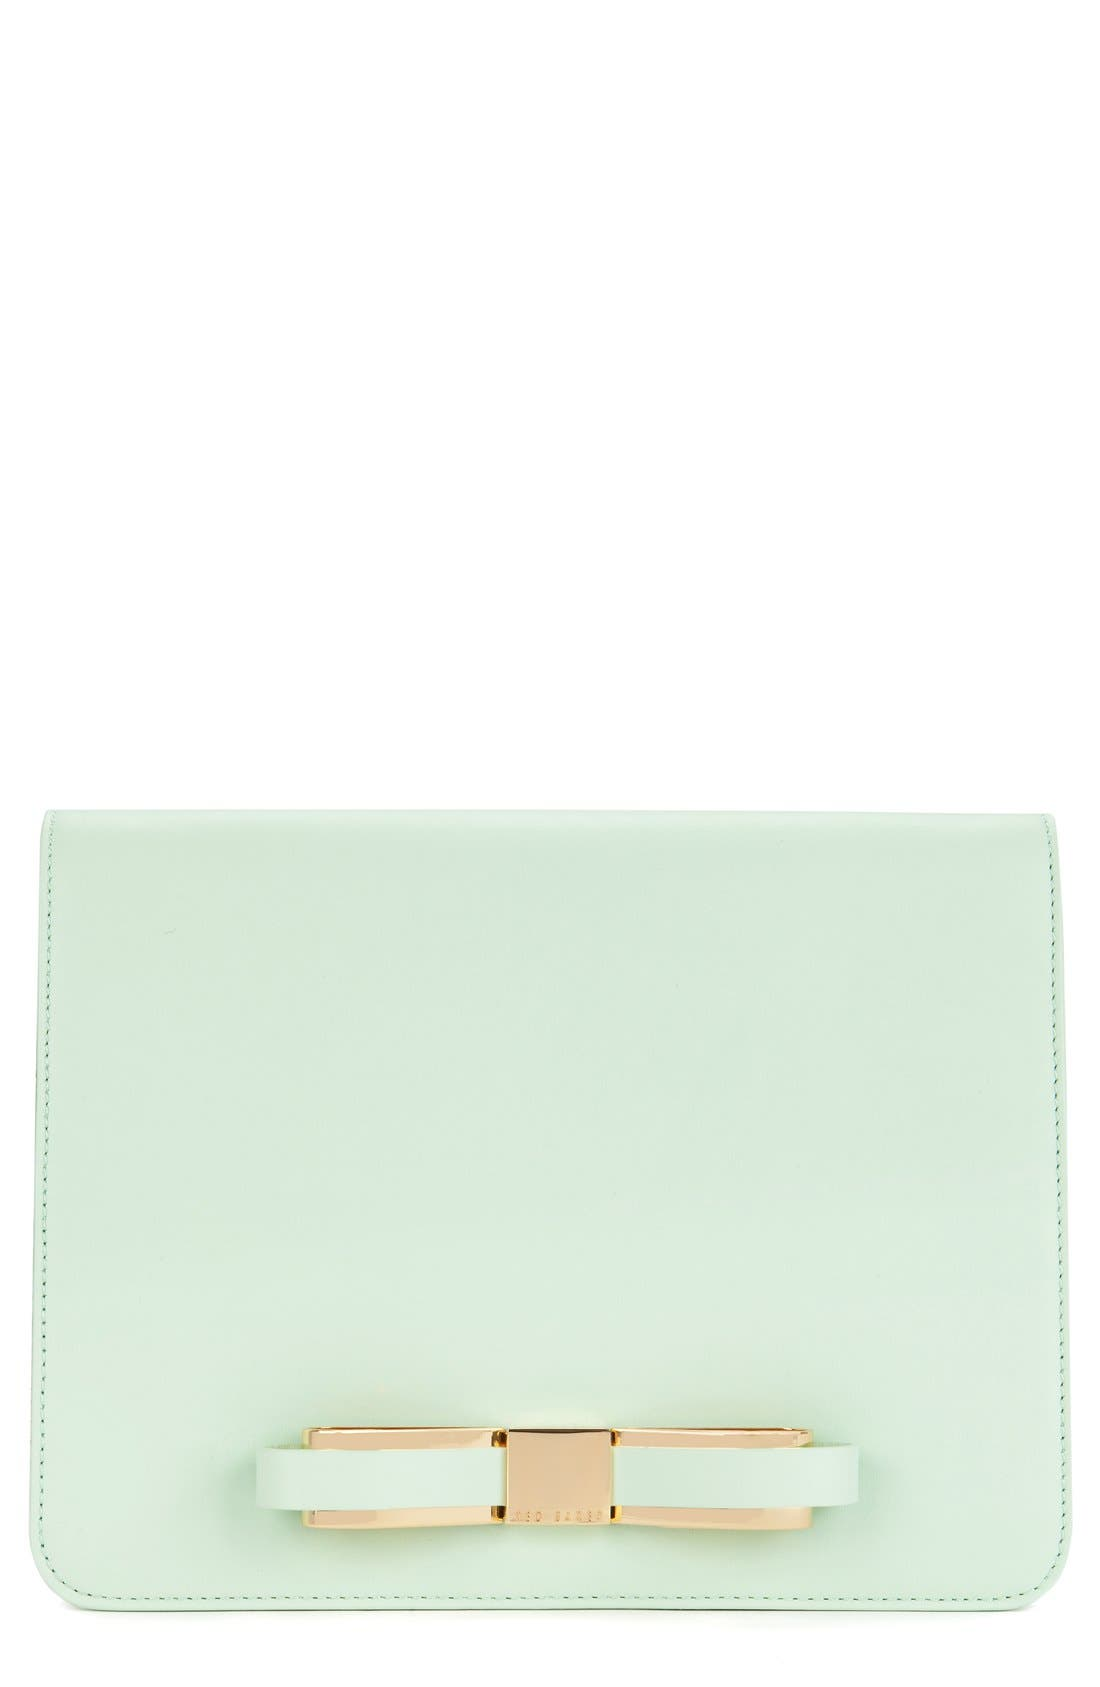 Alternate Image 1 Selected - Ted Baker London 'Slim Bow' Tablet Case